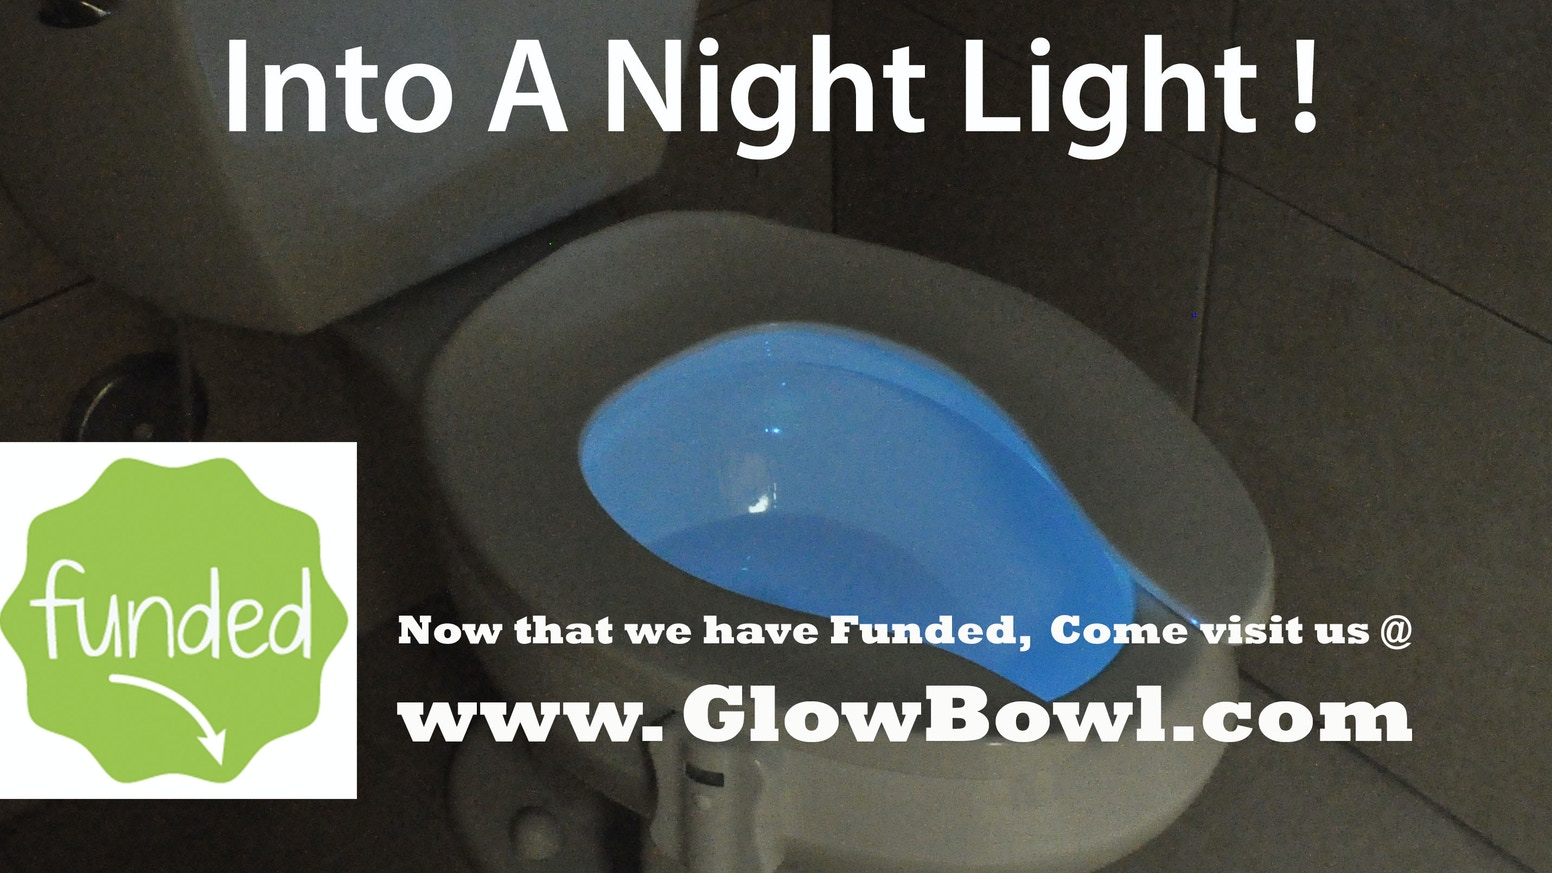 Transforms Your Toilet Into A Night Light. 7 LED Colors to Choose with just the press of a button,Fits ANY Toilet. 5 Stage Dimmer !